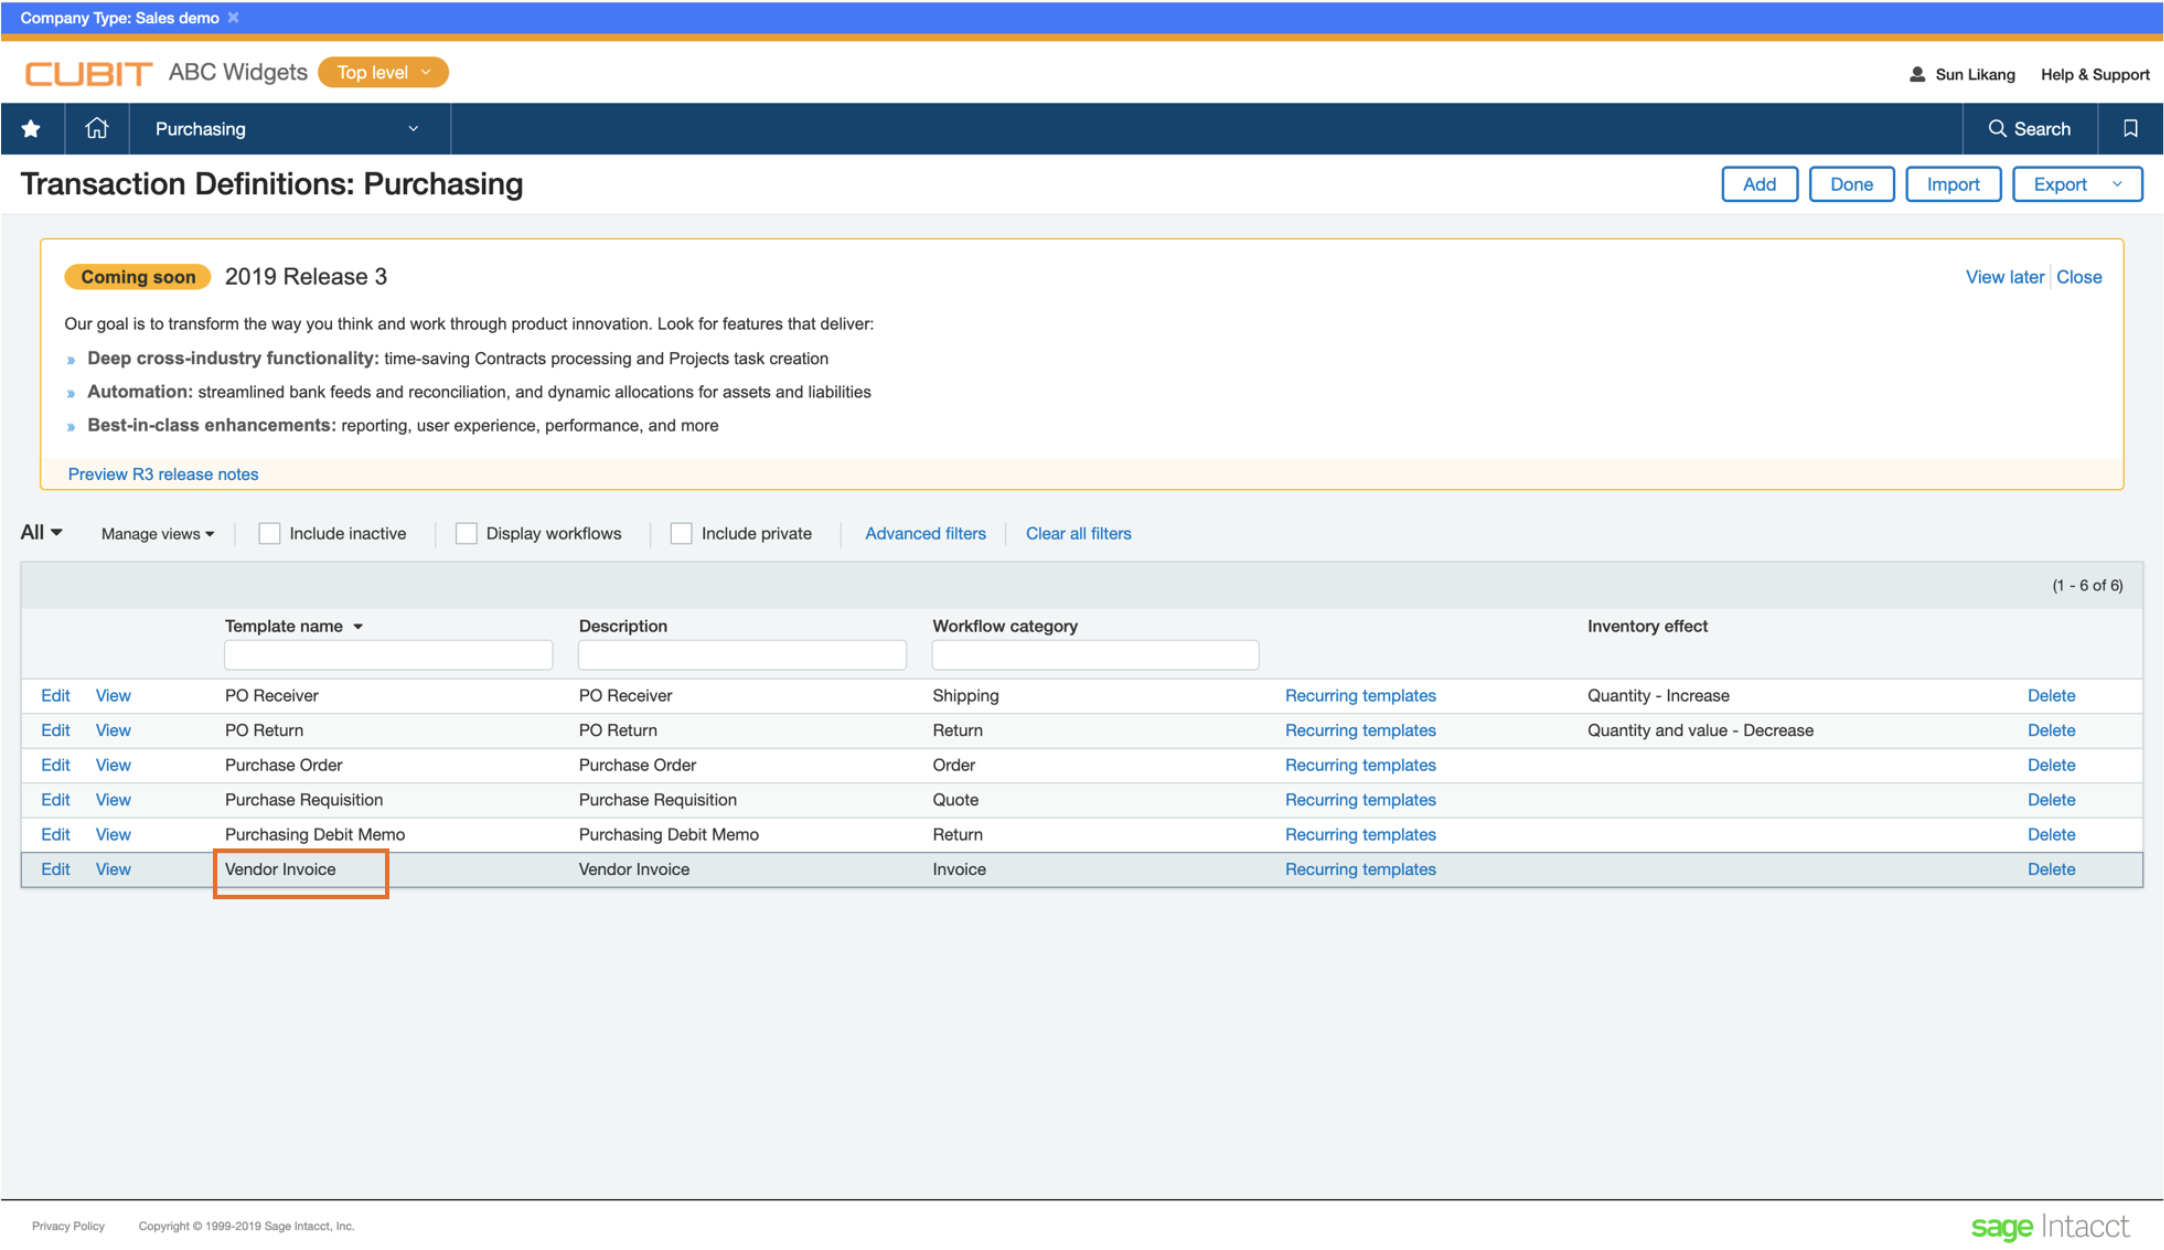 Transaction Definitions page in Intacct - VI